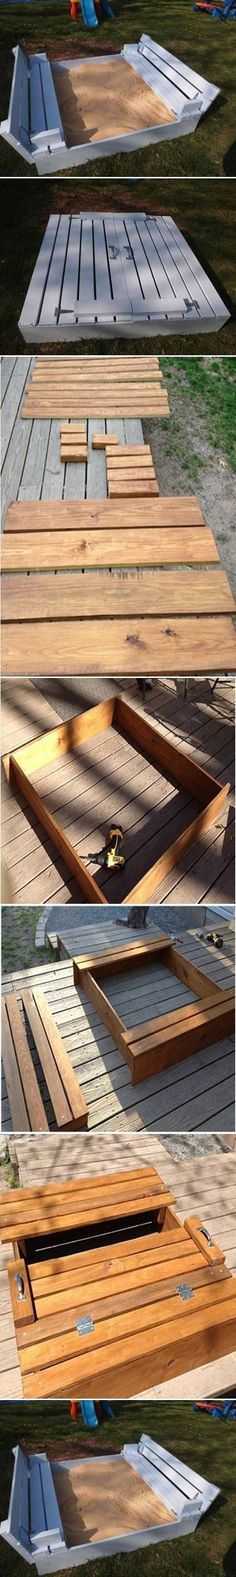 DIY Sandbox...that is freaking awesome!! by Flairdiva